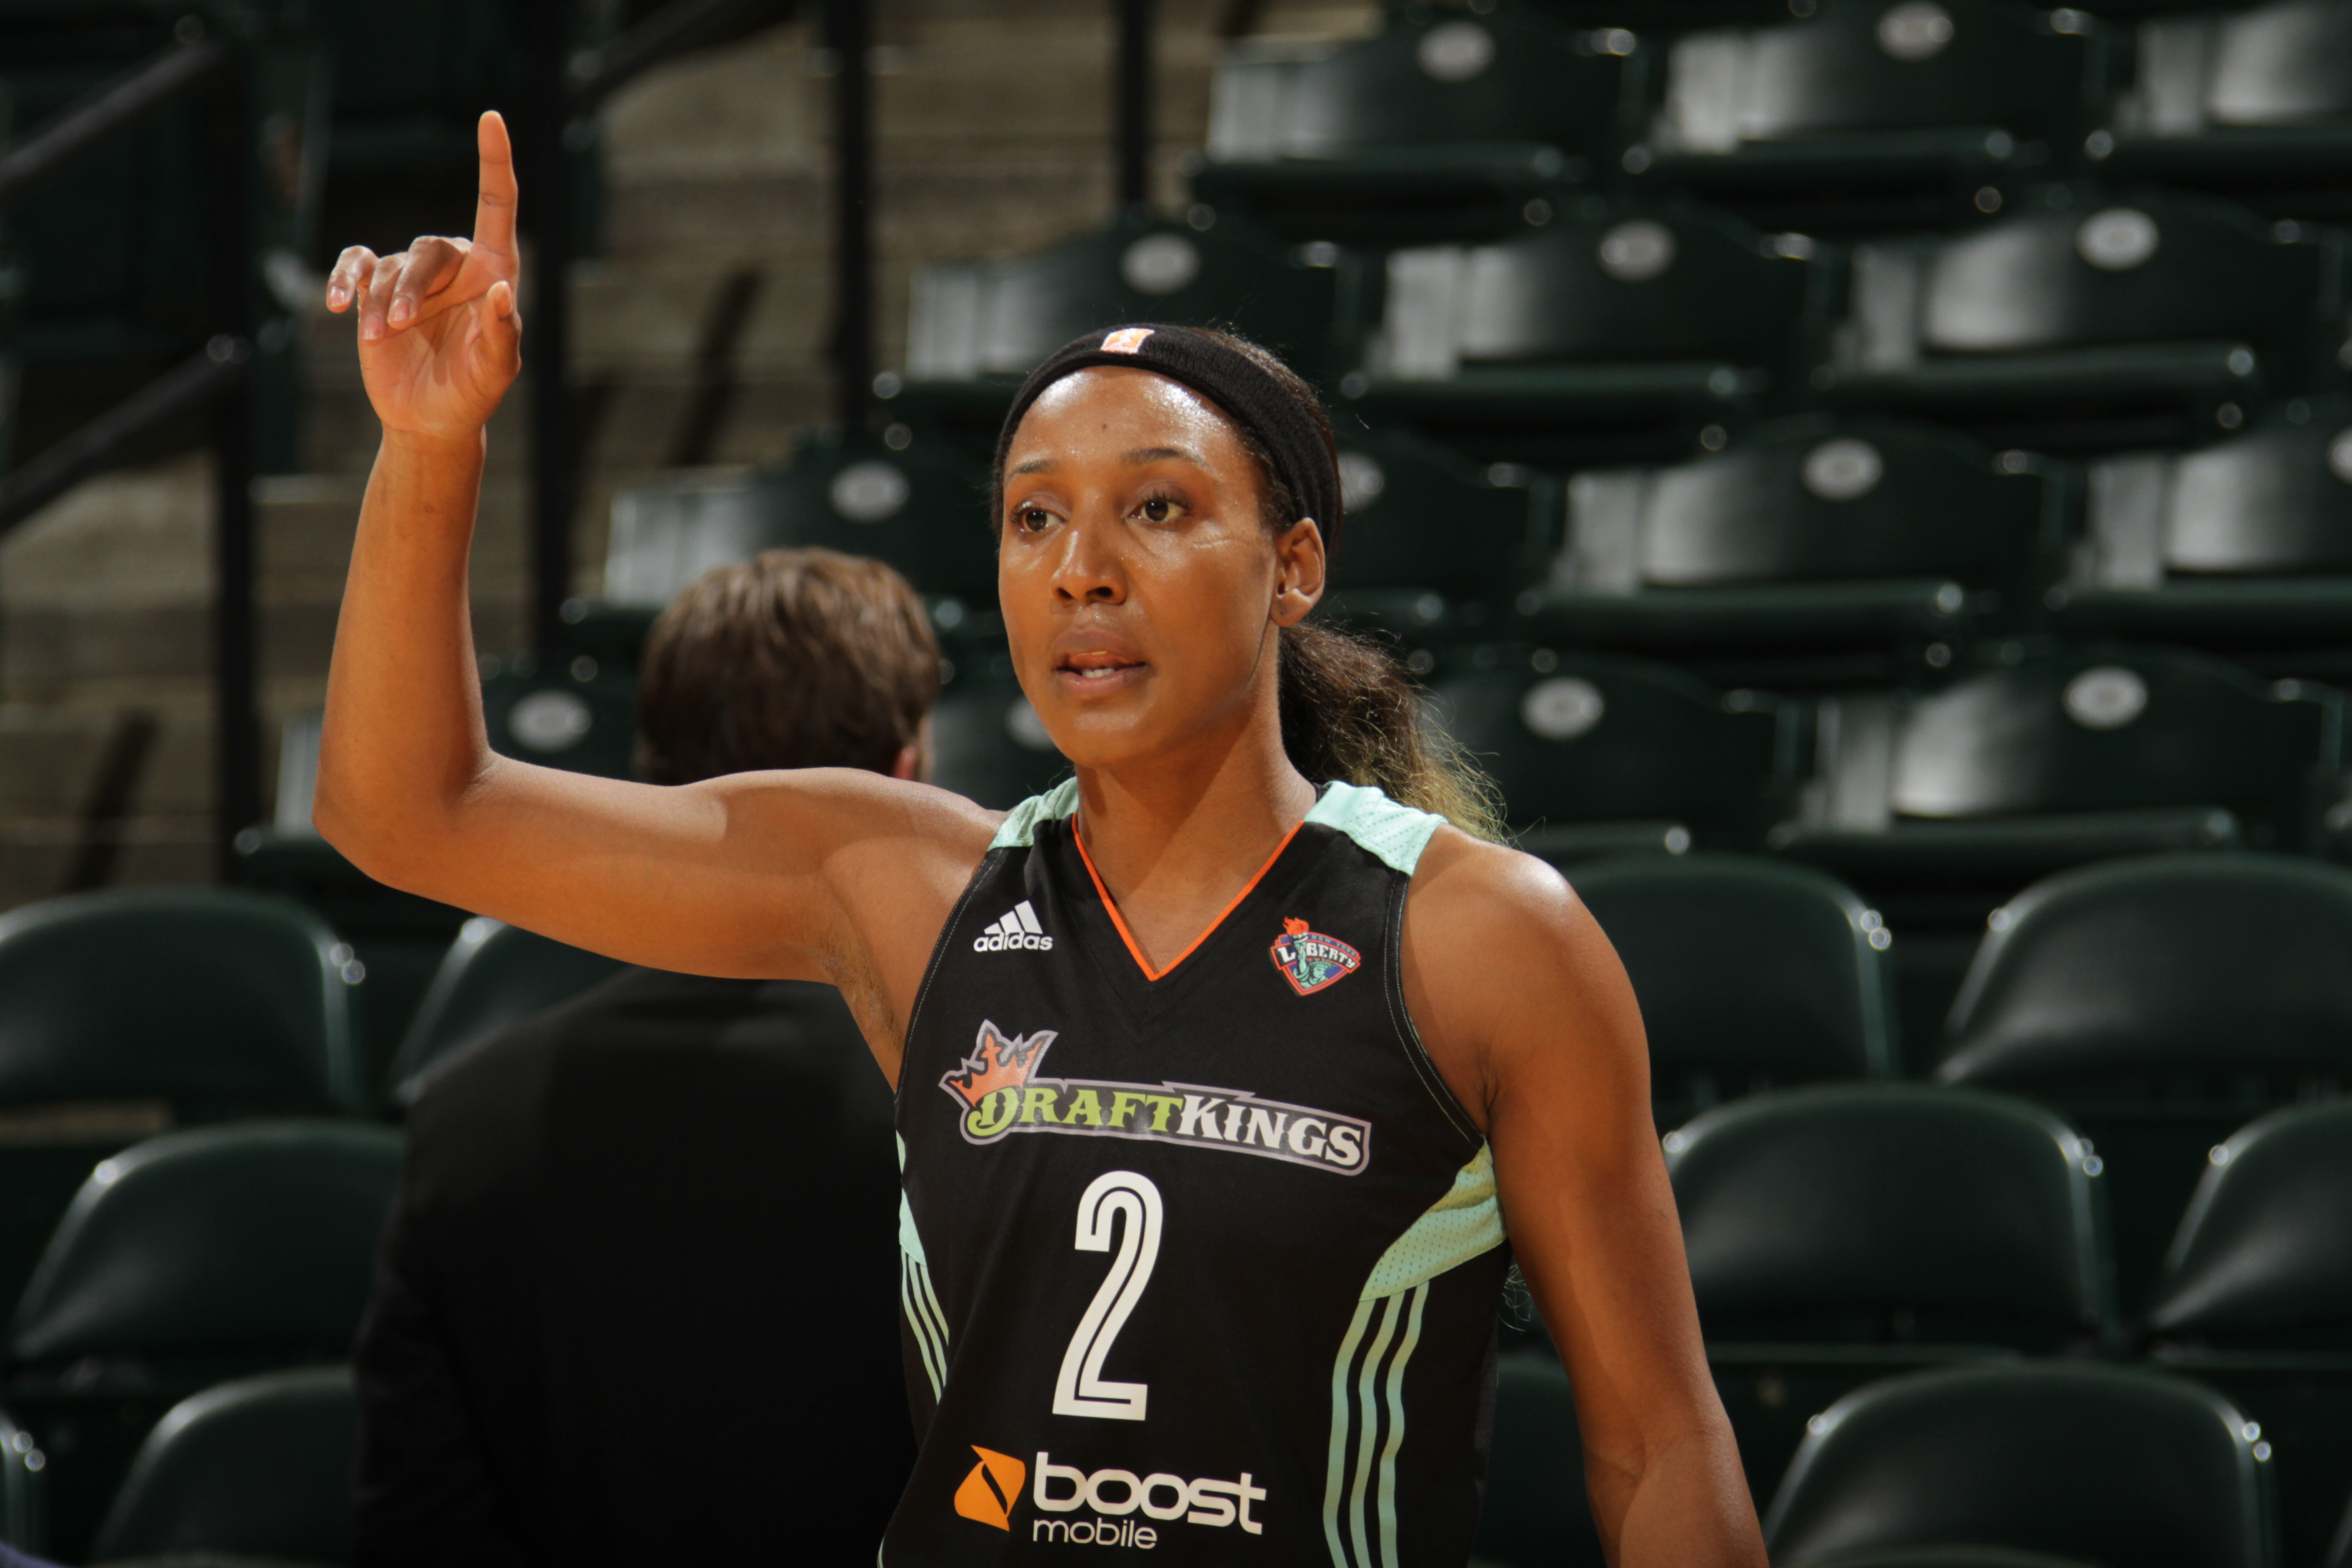 Former WNBA Player Claims She Was Bullied For Being